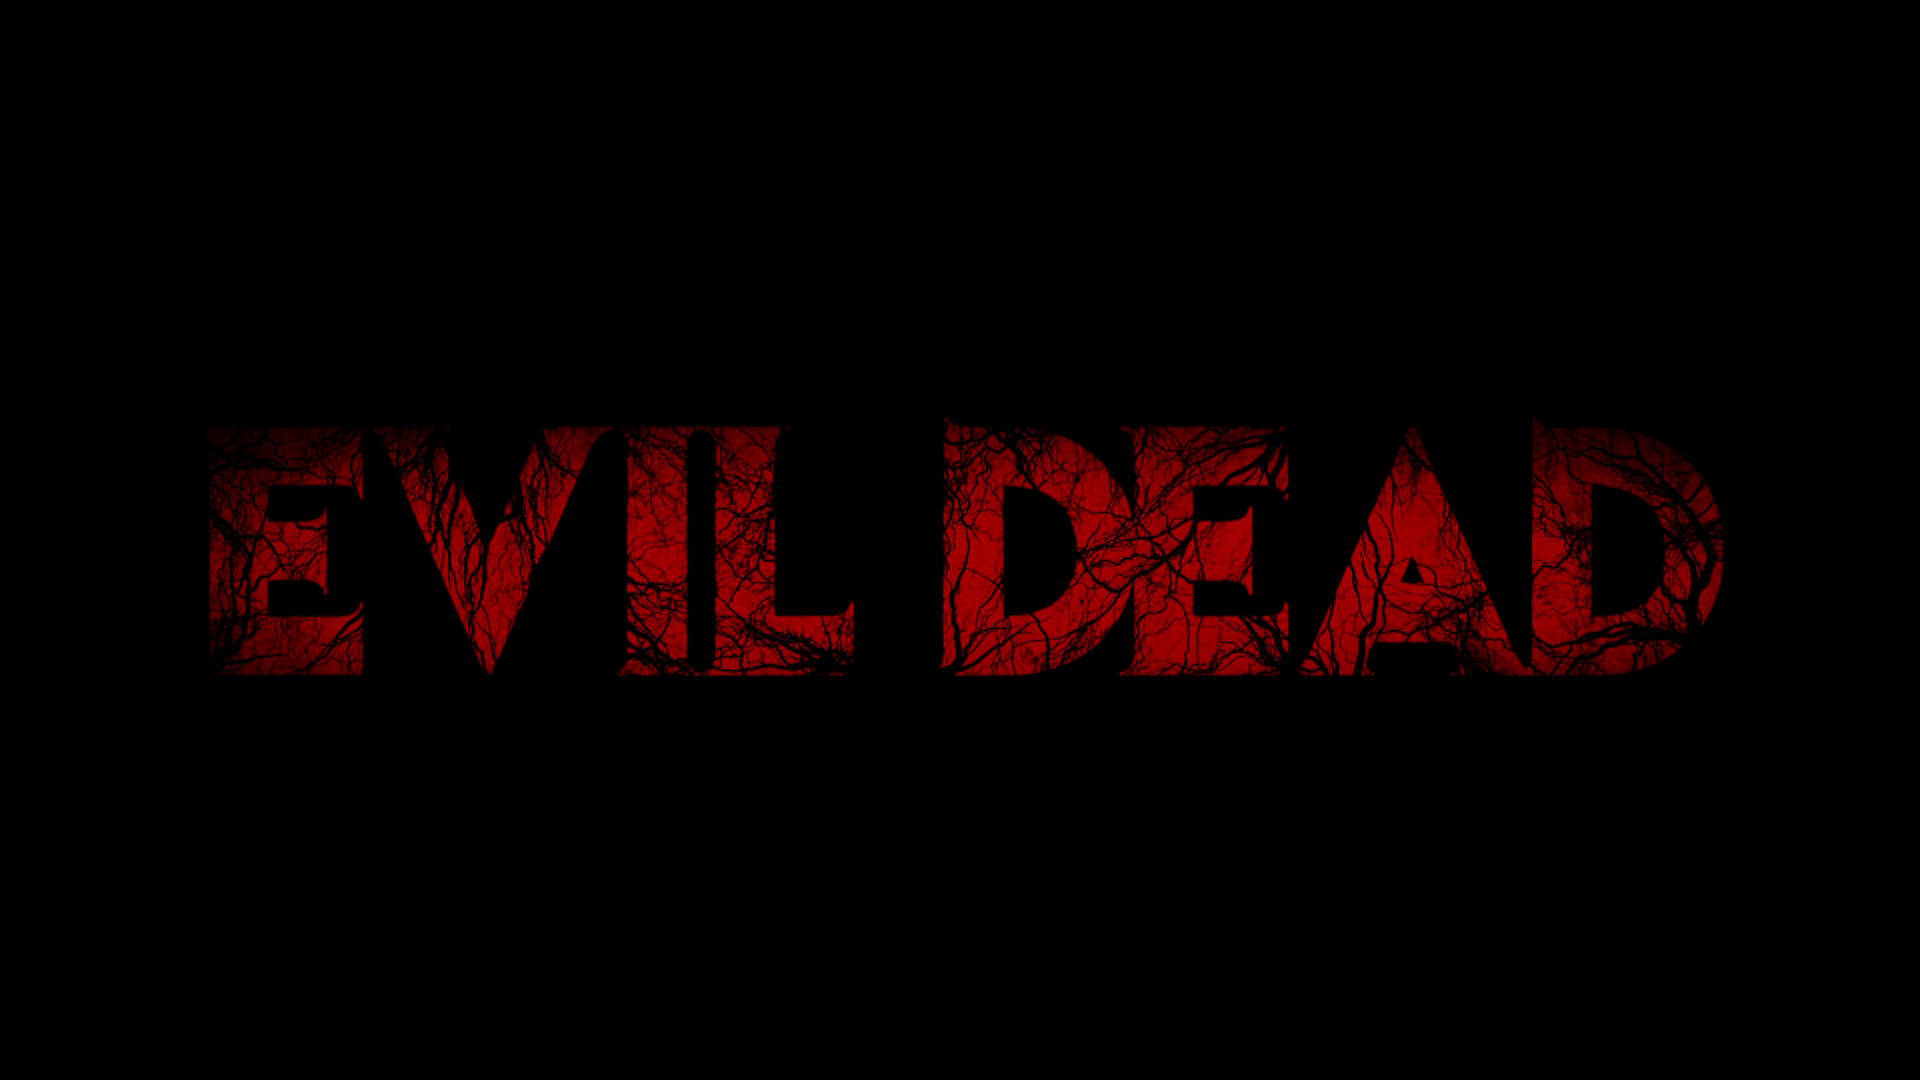 evil dead 2016 wallpapers wallpaper cave